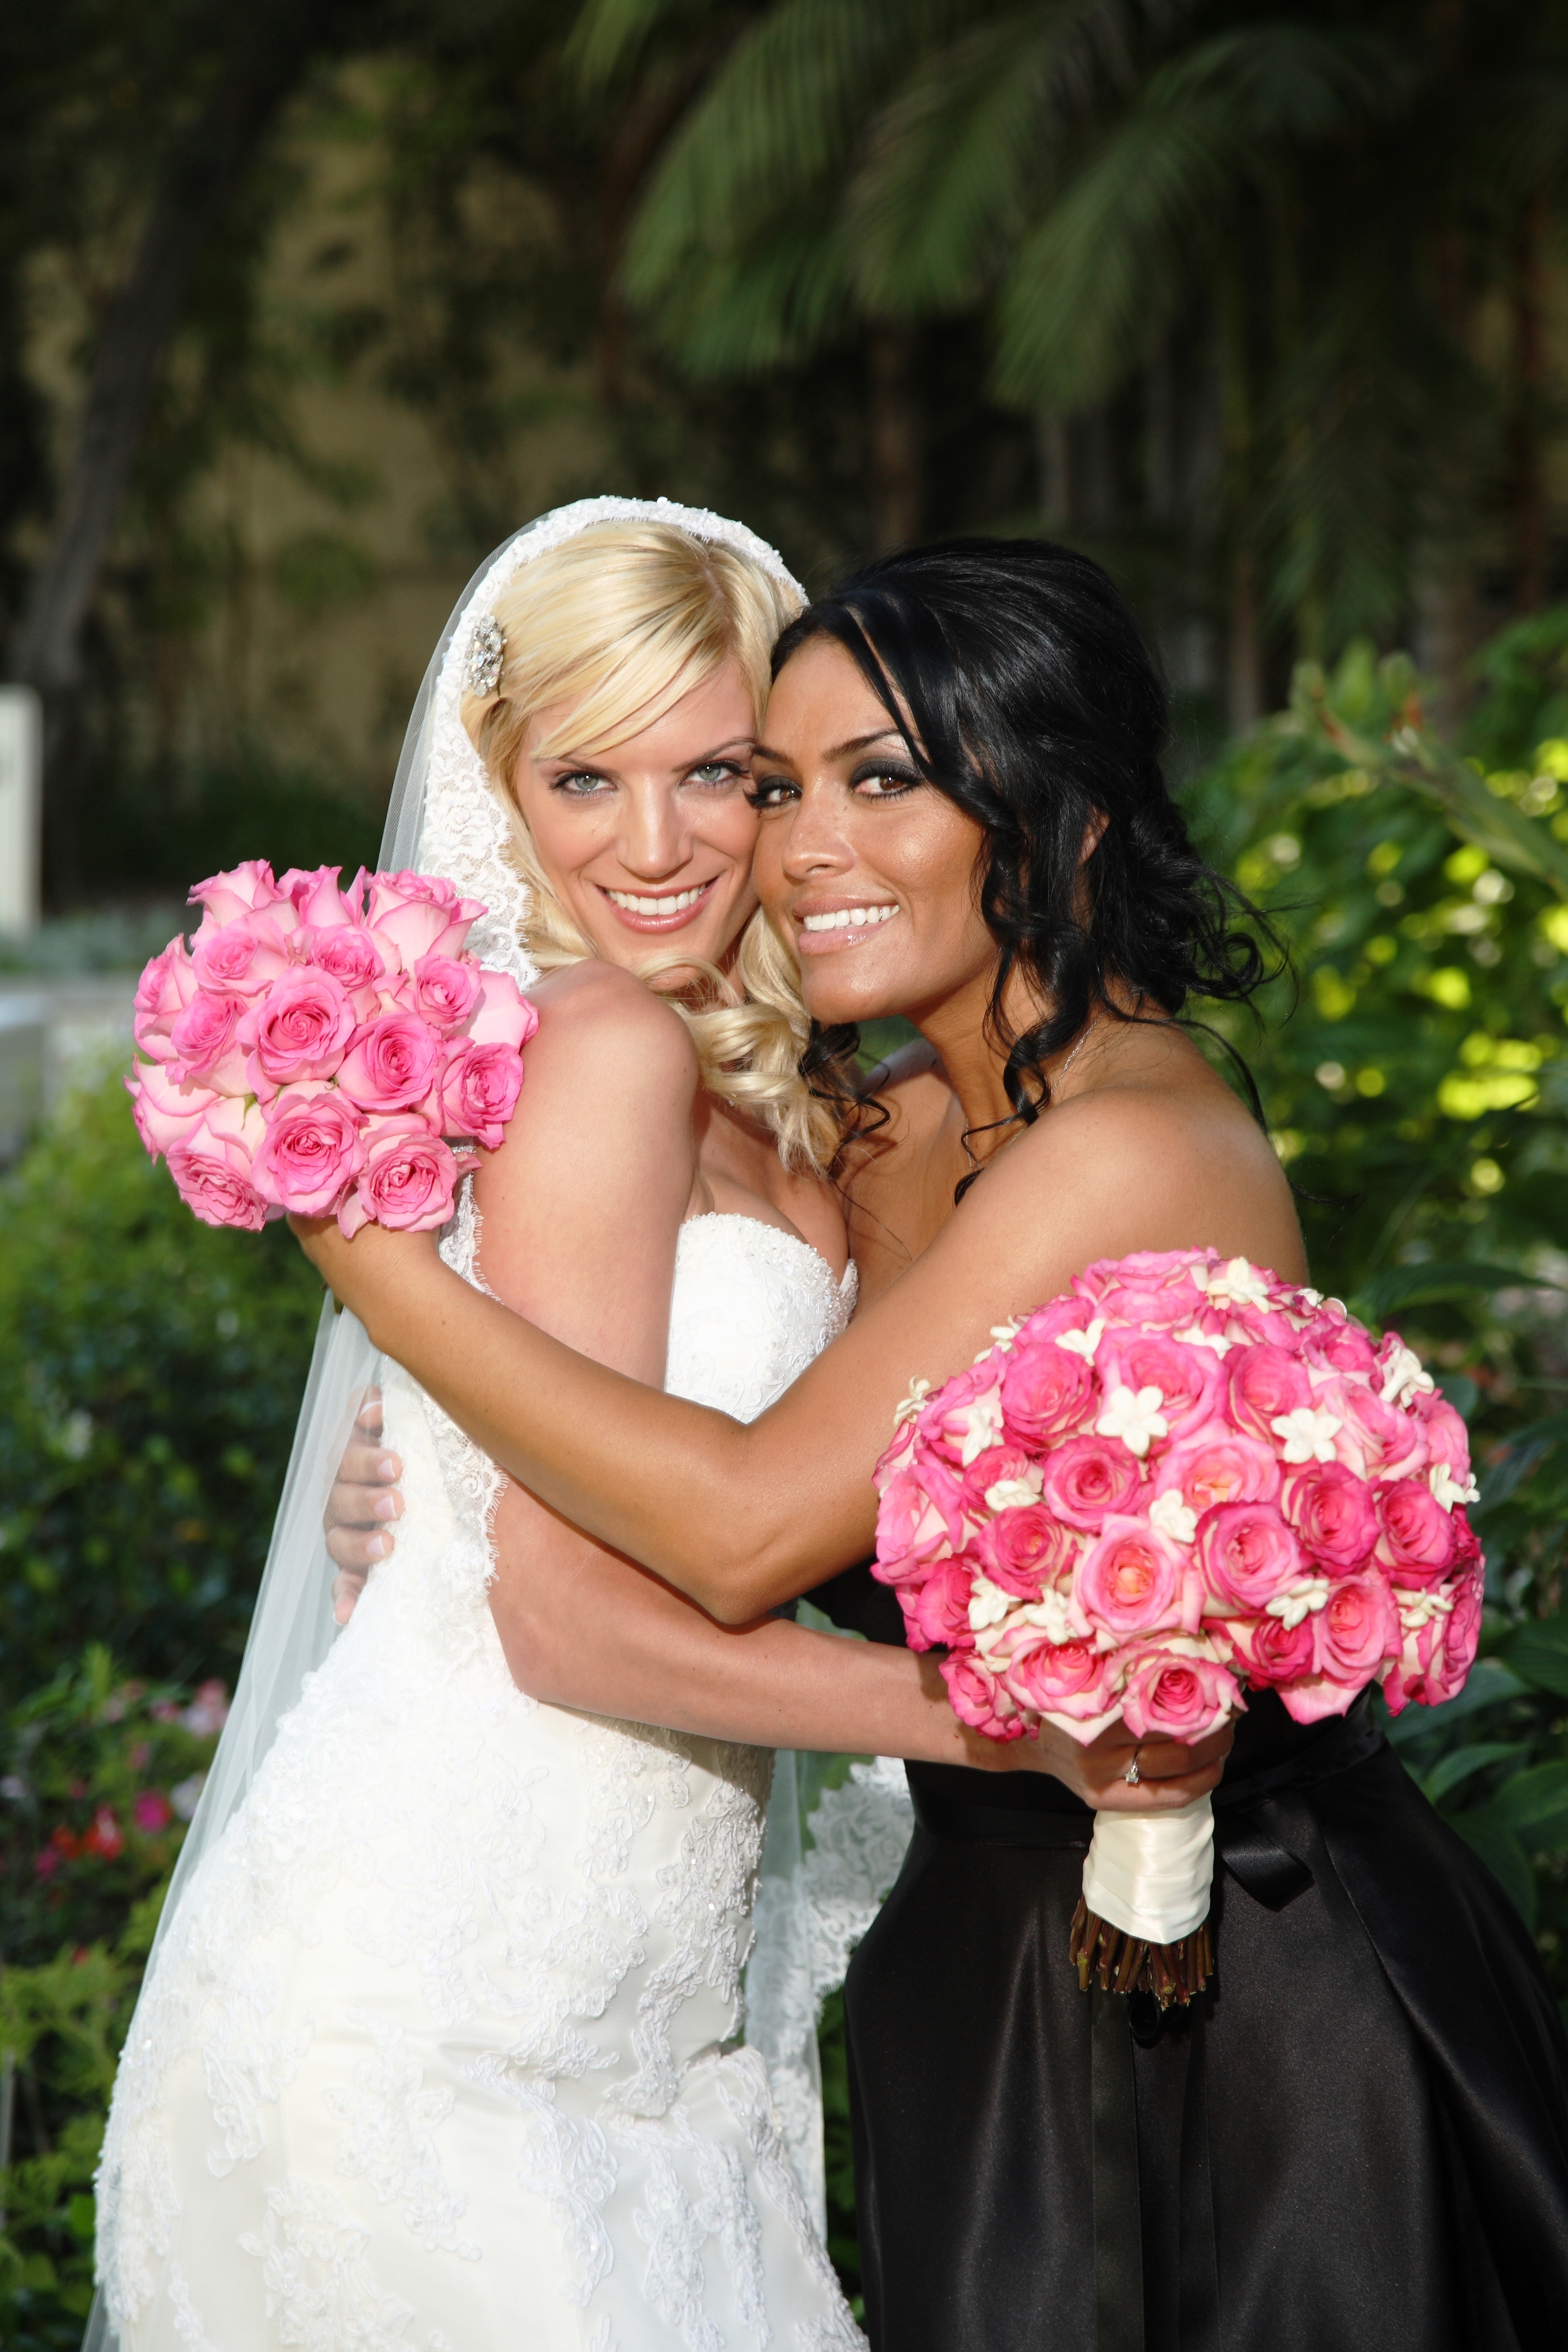 Flowers & Decor, Fashion, pink, Bride Bouquets, Flowers, Brides, Dresses, Maid, Event professionals, Flower Wedding Dresses